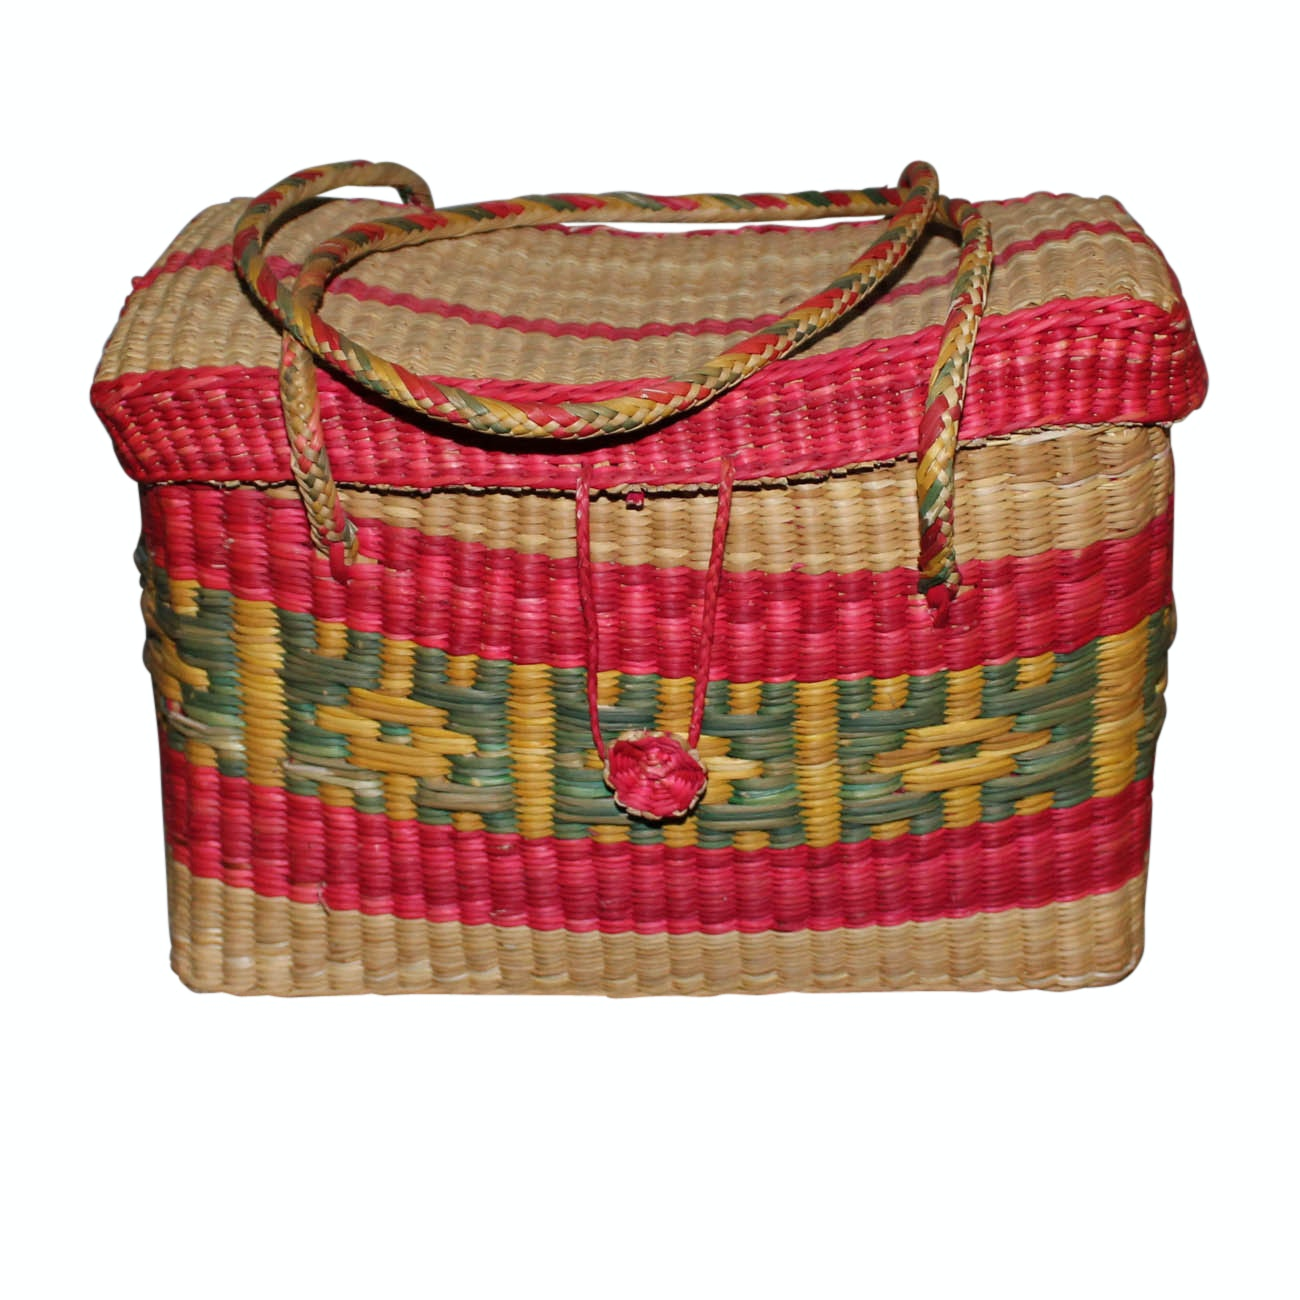 Colorful Handwoven Basket